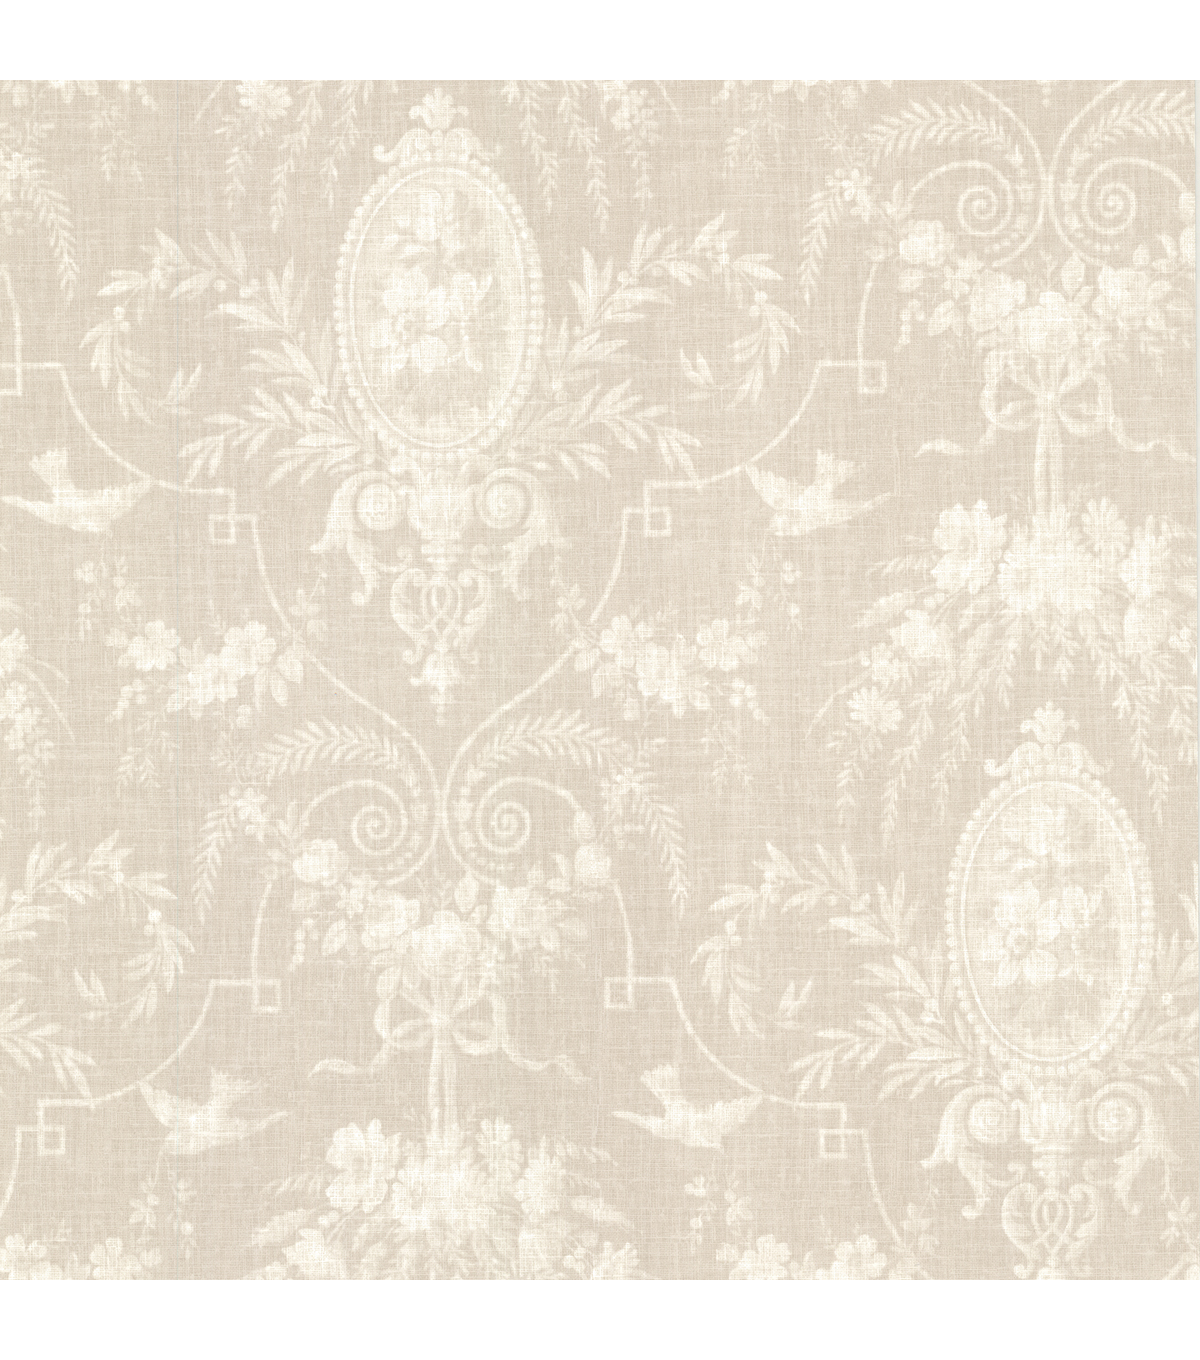 Flourish Taupe Cameo Fleur Wallpaper Sample